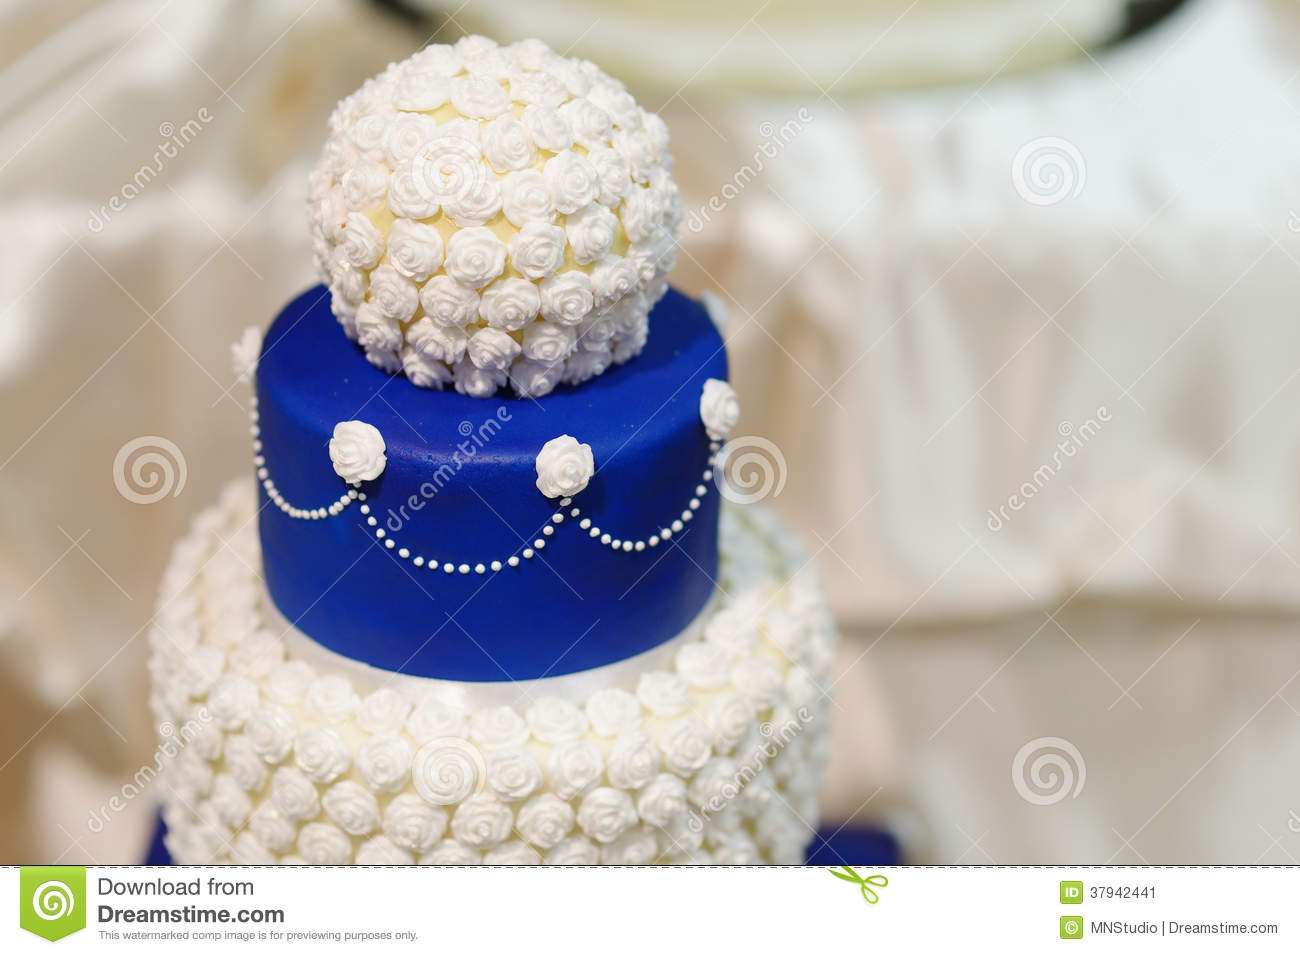 Blue Wedding Cake Decorated With Flowers Stock Image